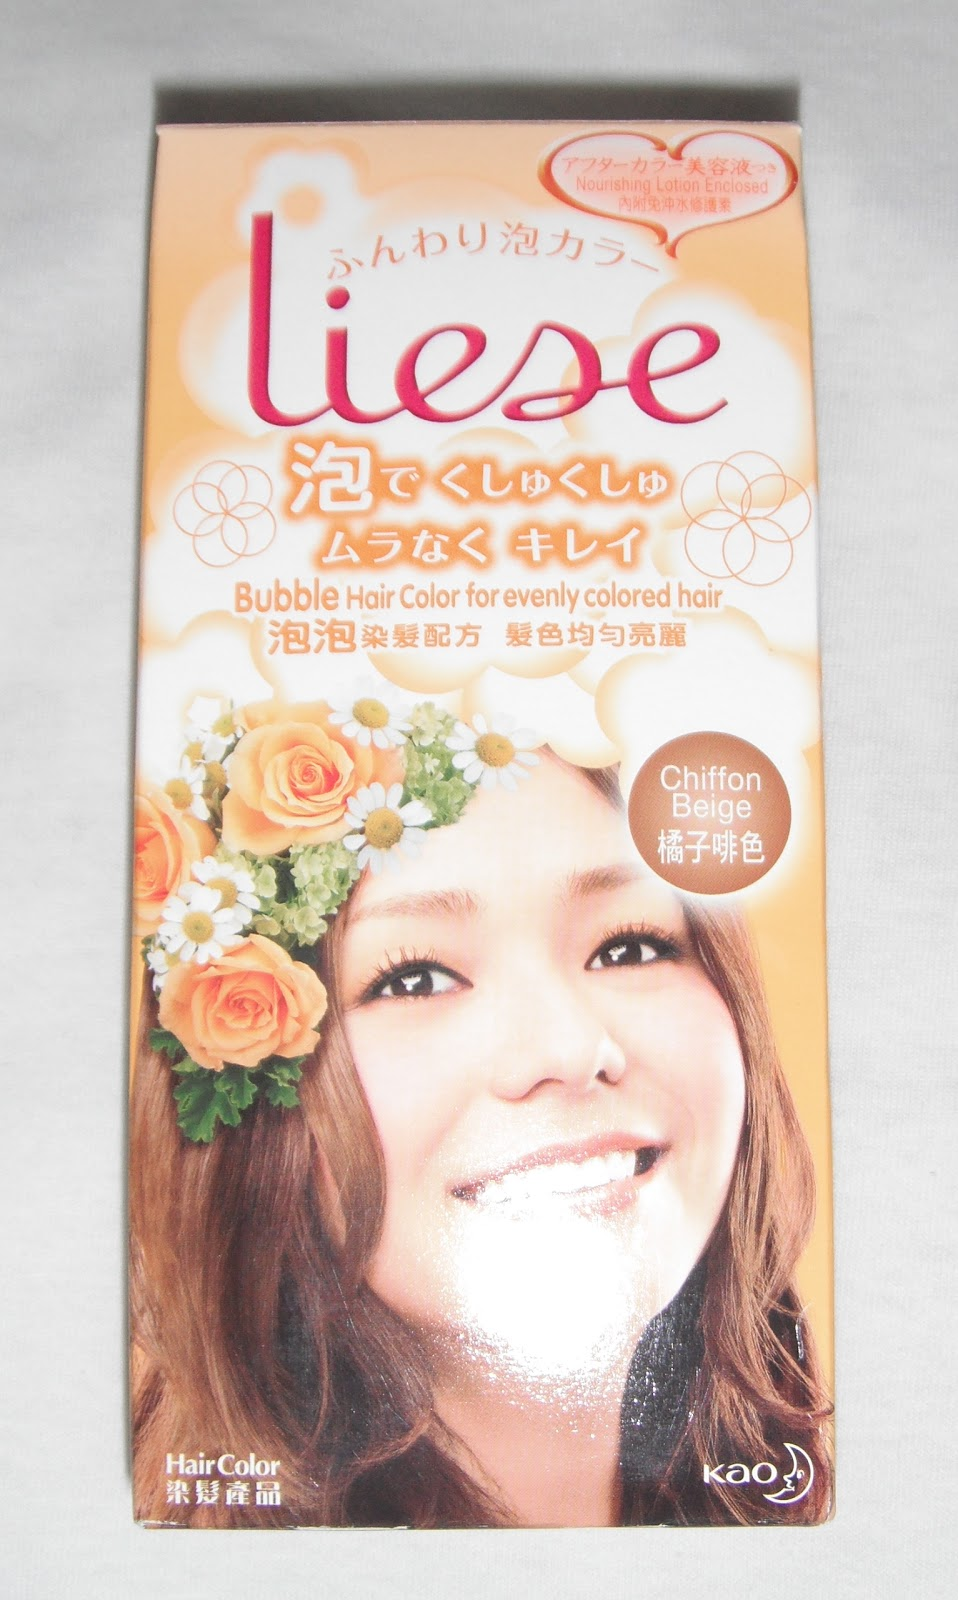 Ssushoo REVIEW Liese Bubble Hair Color Chiffon Beige